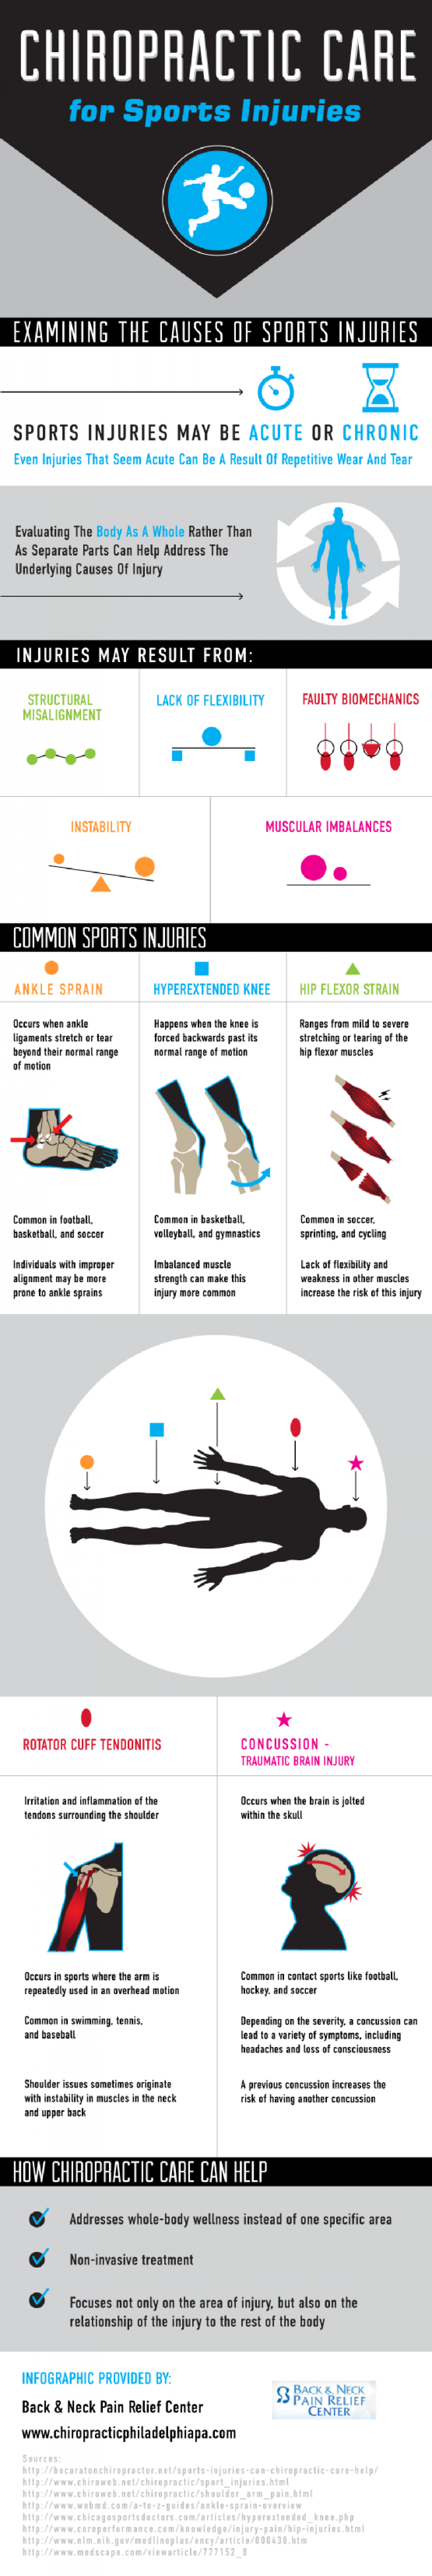 Chiropractic Care for Sports Injuries Infographic